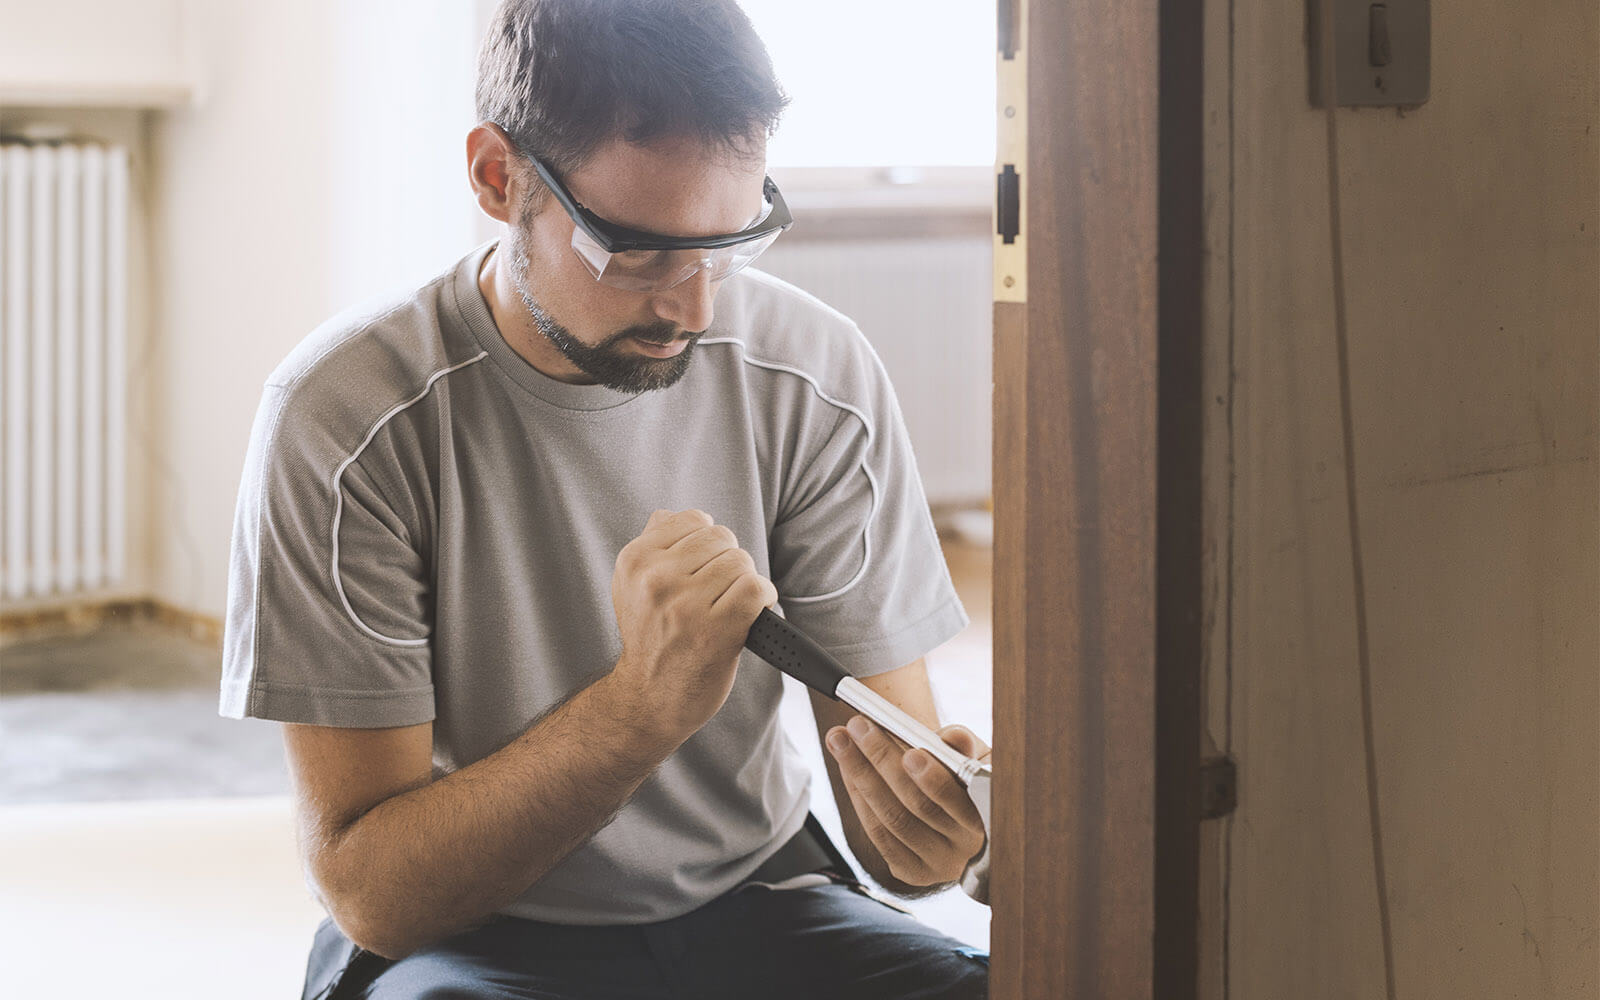 Carpentry work on domestic renovation project